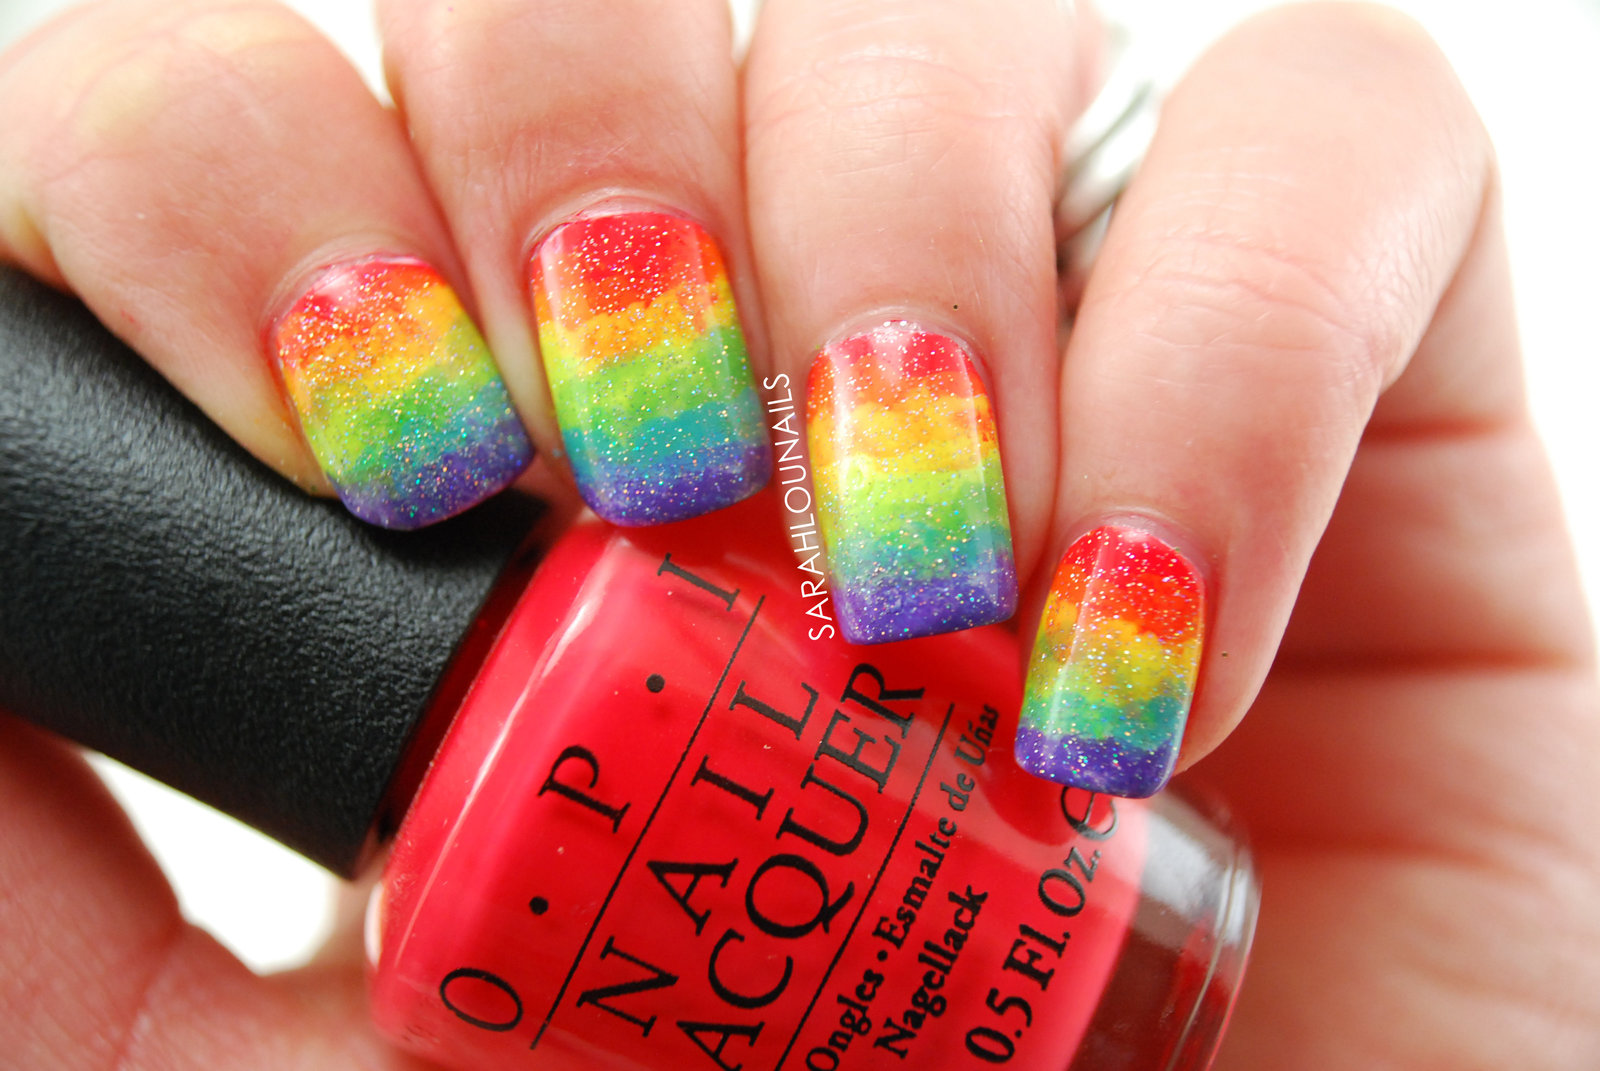 Rainbow Sponge Nails 007 copy